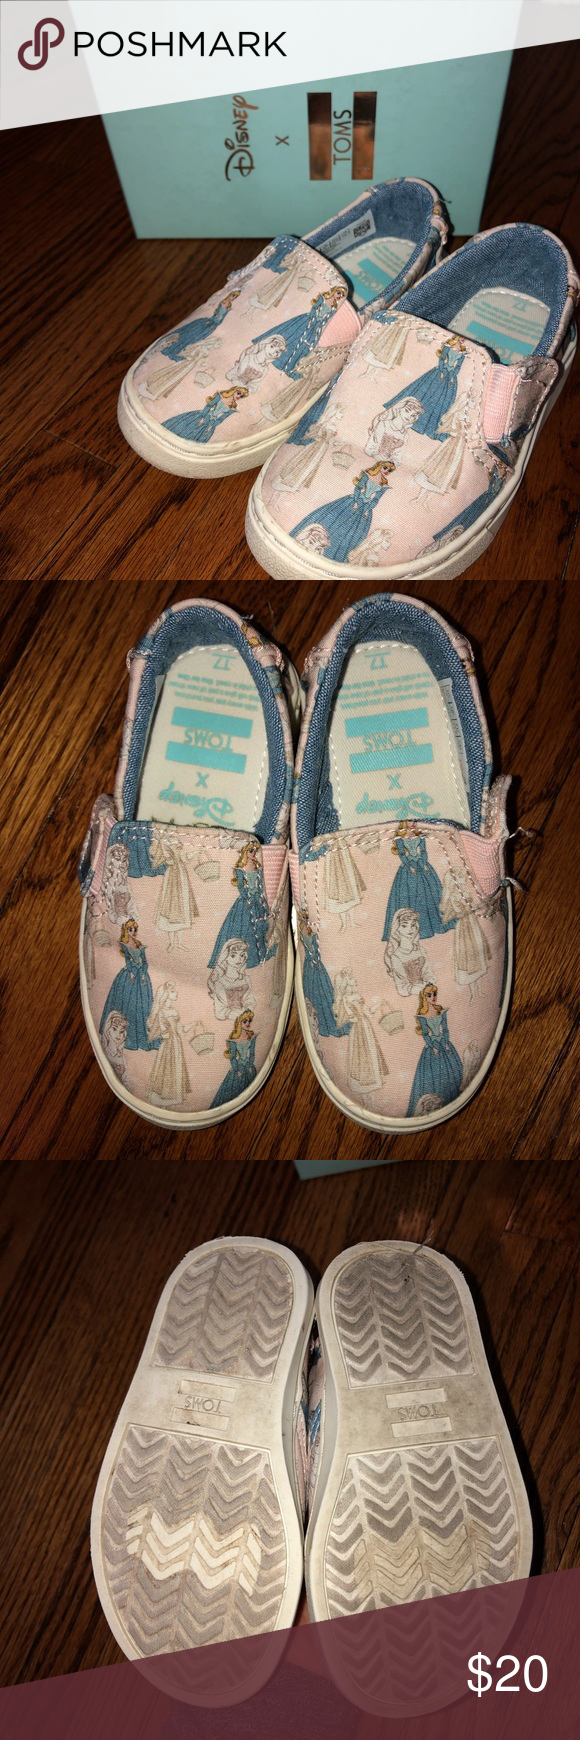 Sleeping Beauty Toms In 2020 With Images Toms Shoes Toms Shoes